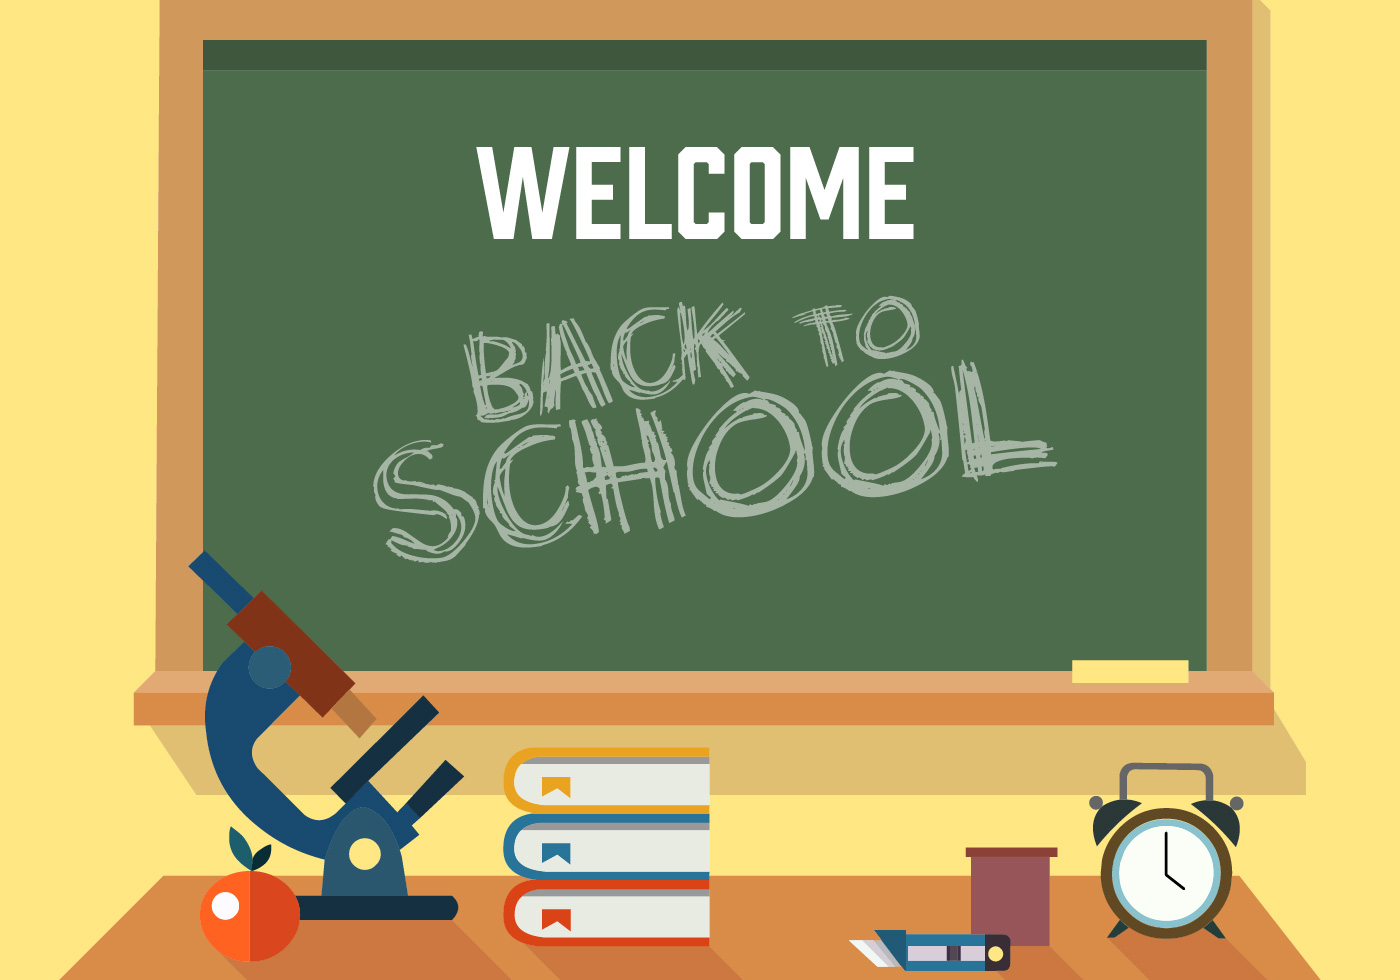 back to school vector - photo #22